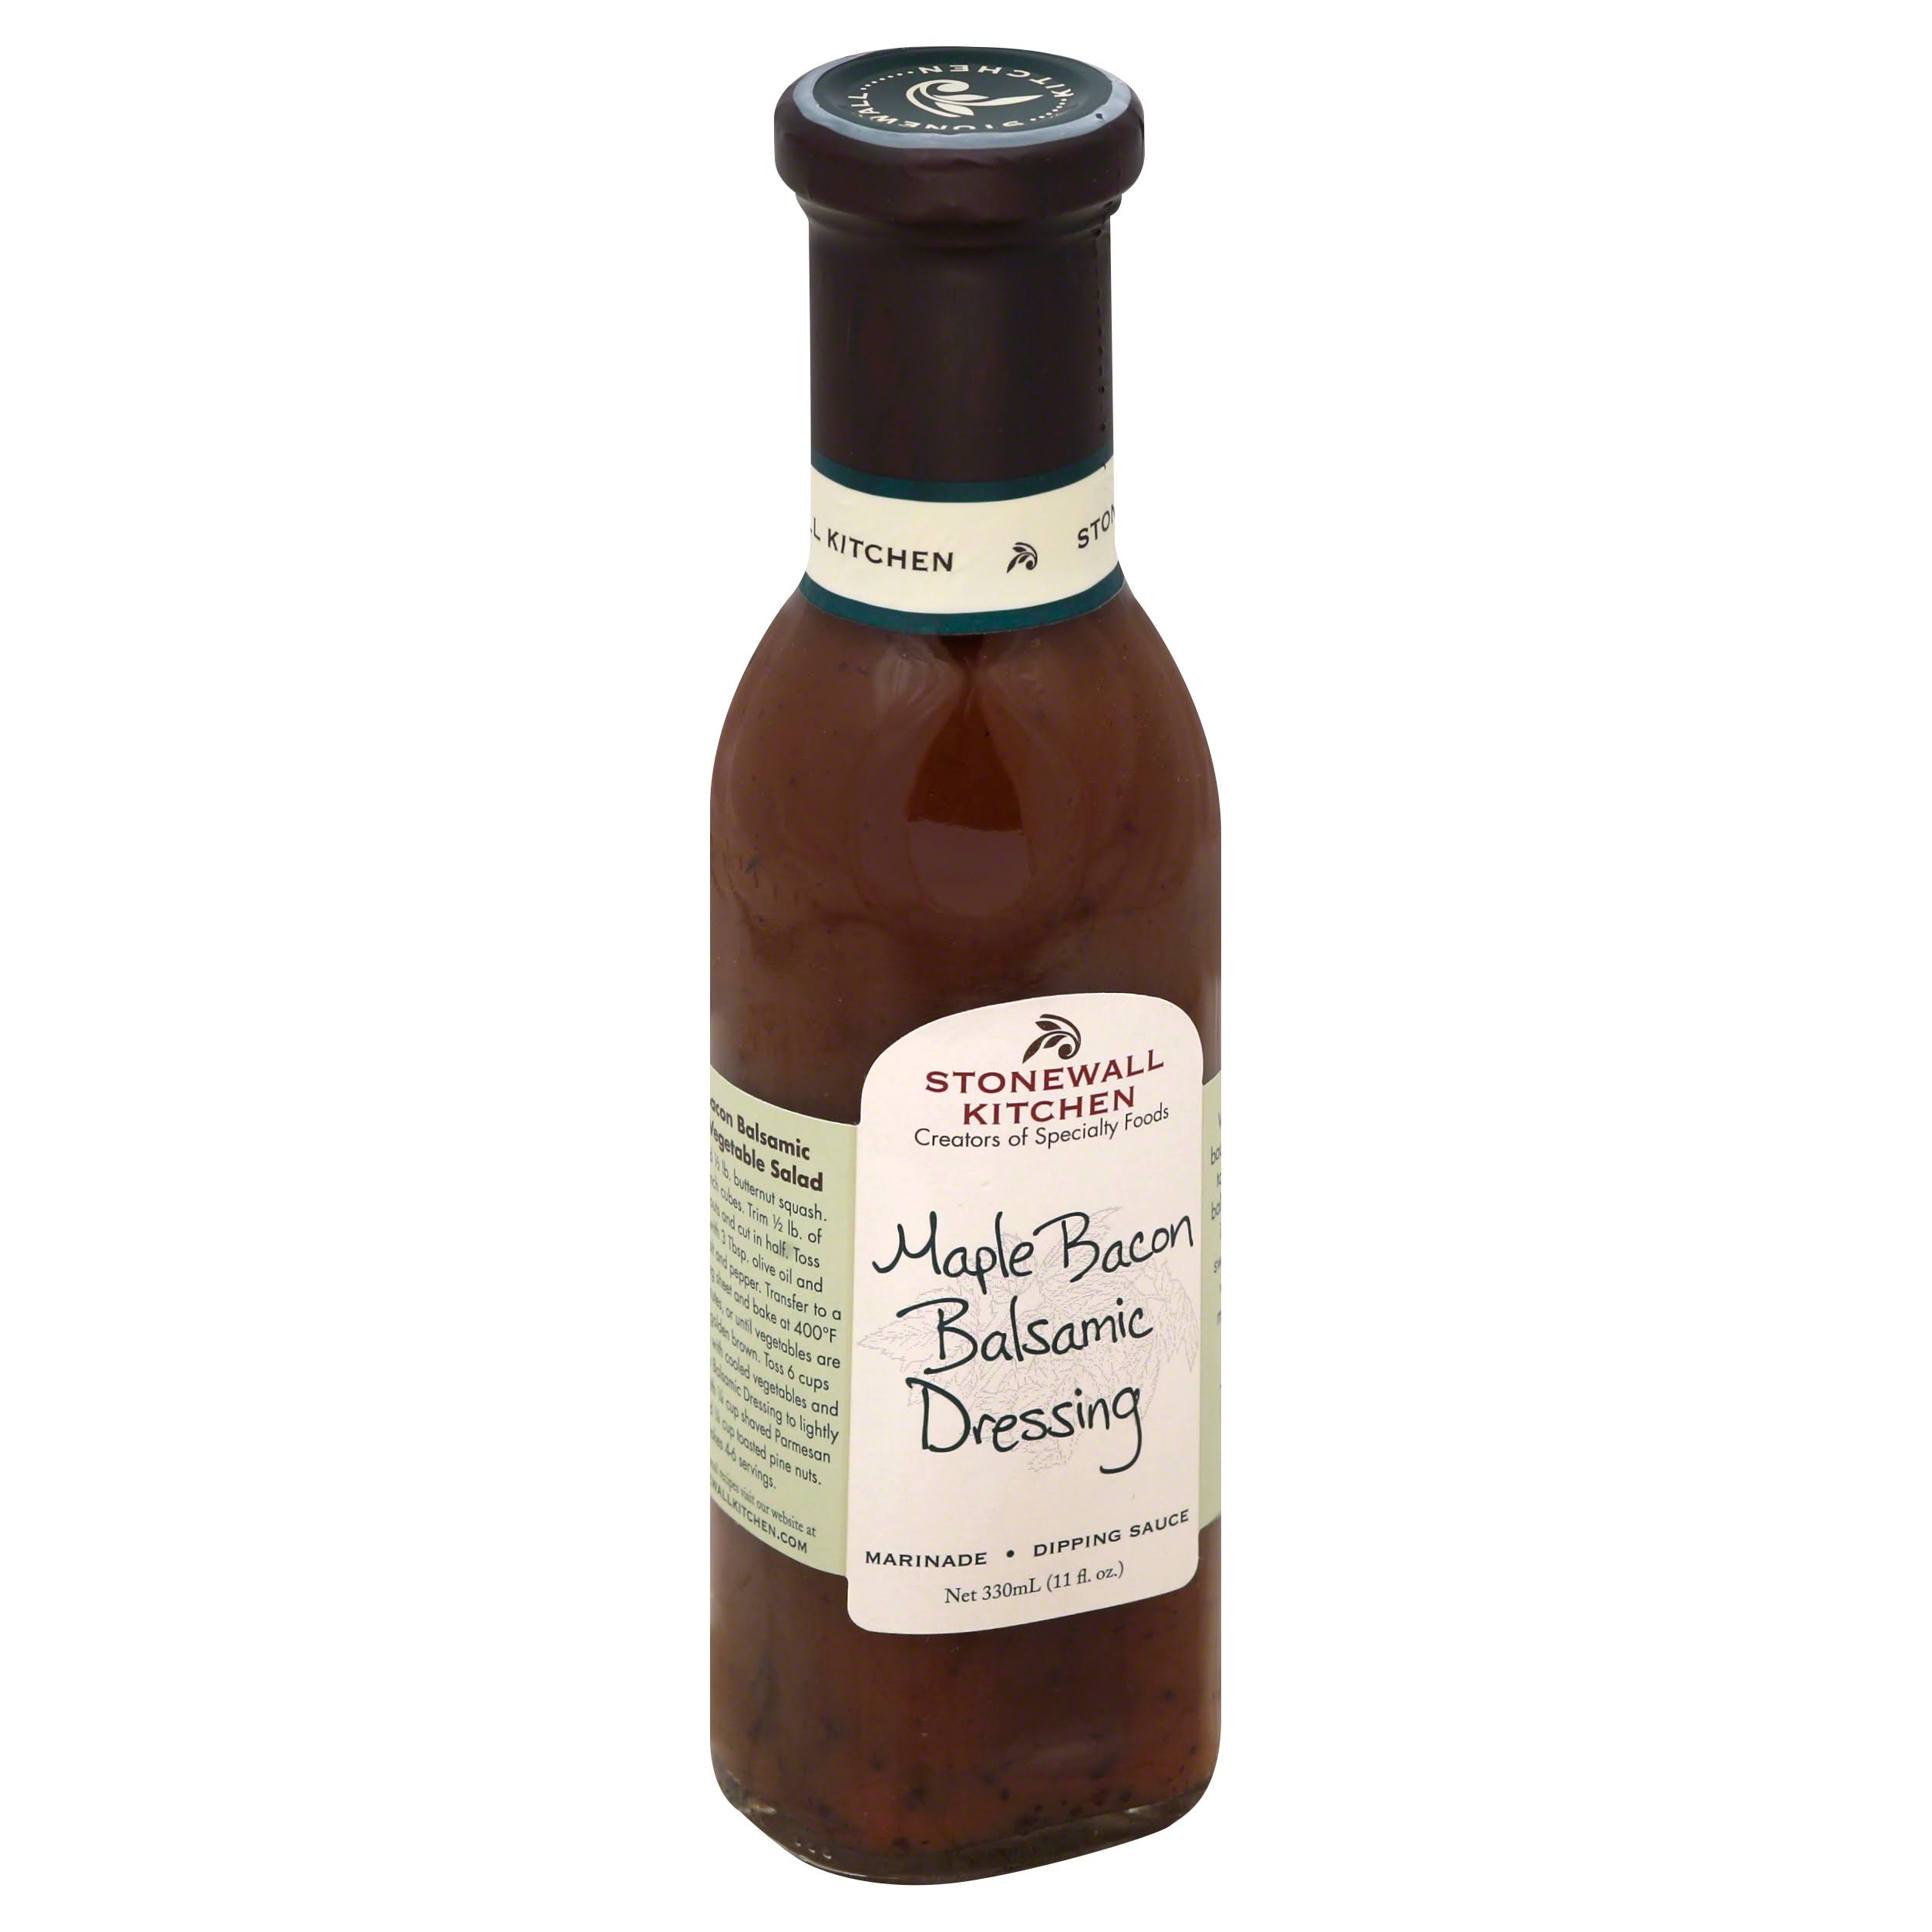 Stonewall Kitchen Balsamic Dressing - Maple Bacon, 330ml